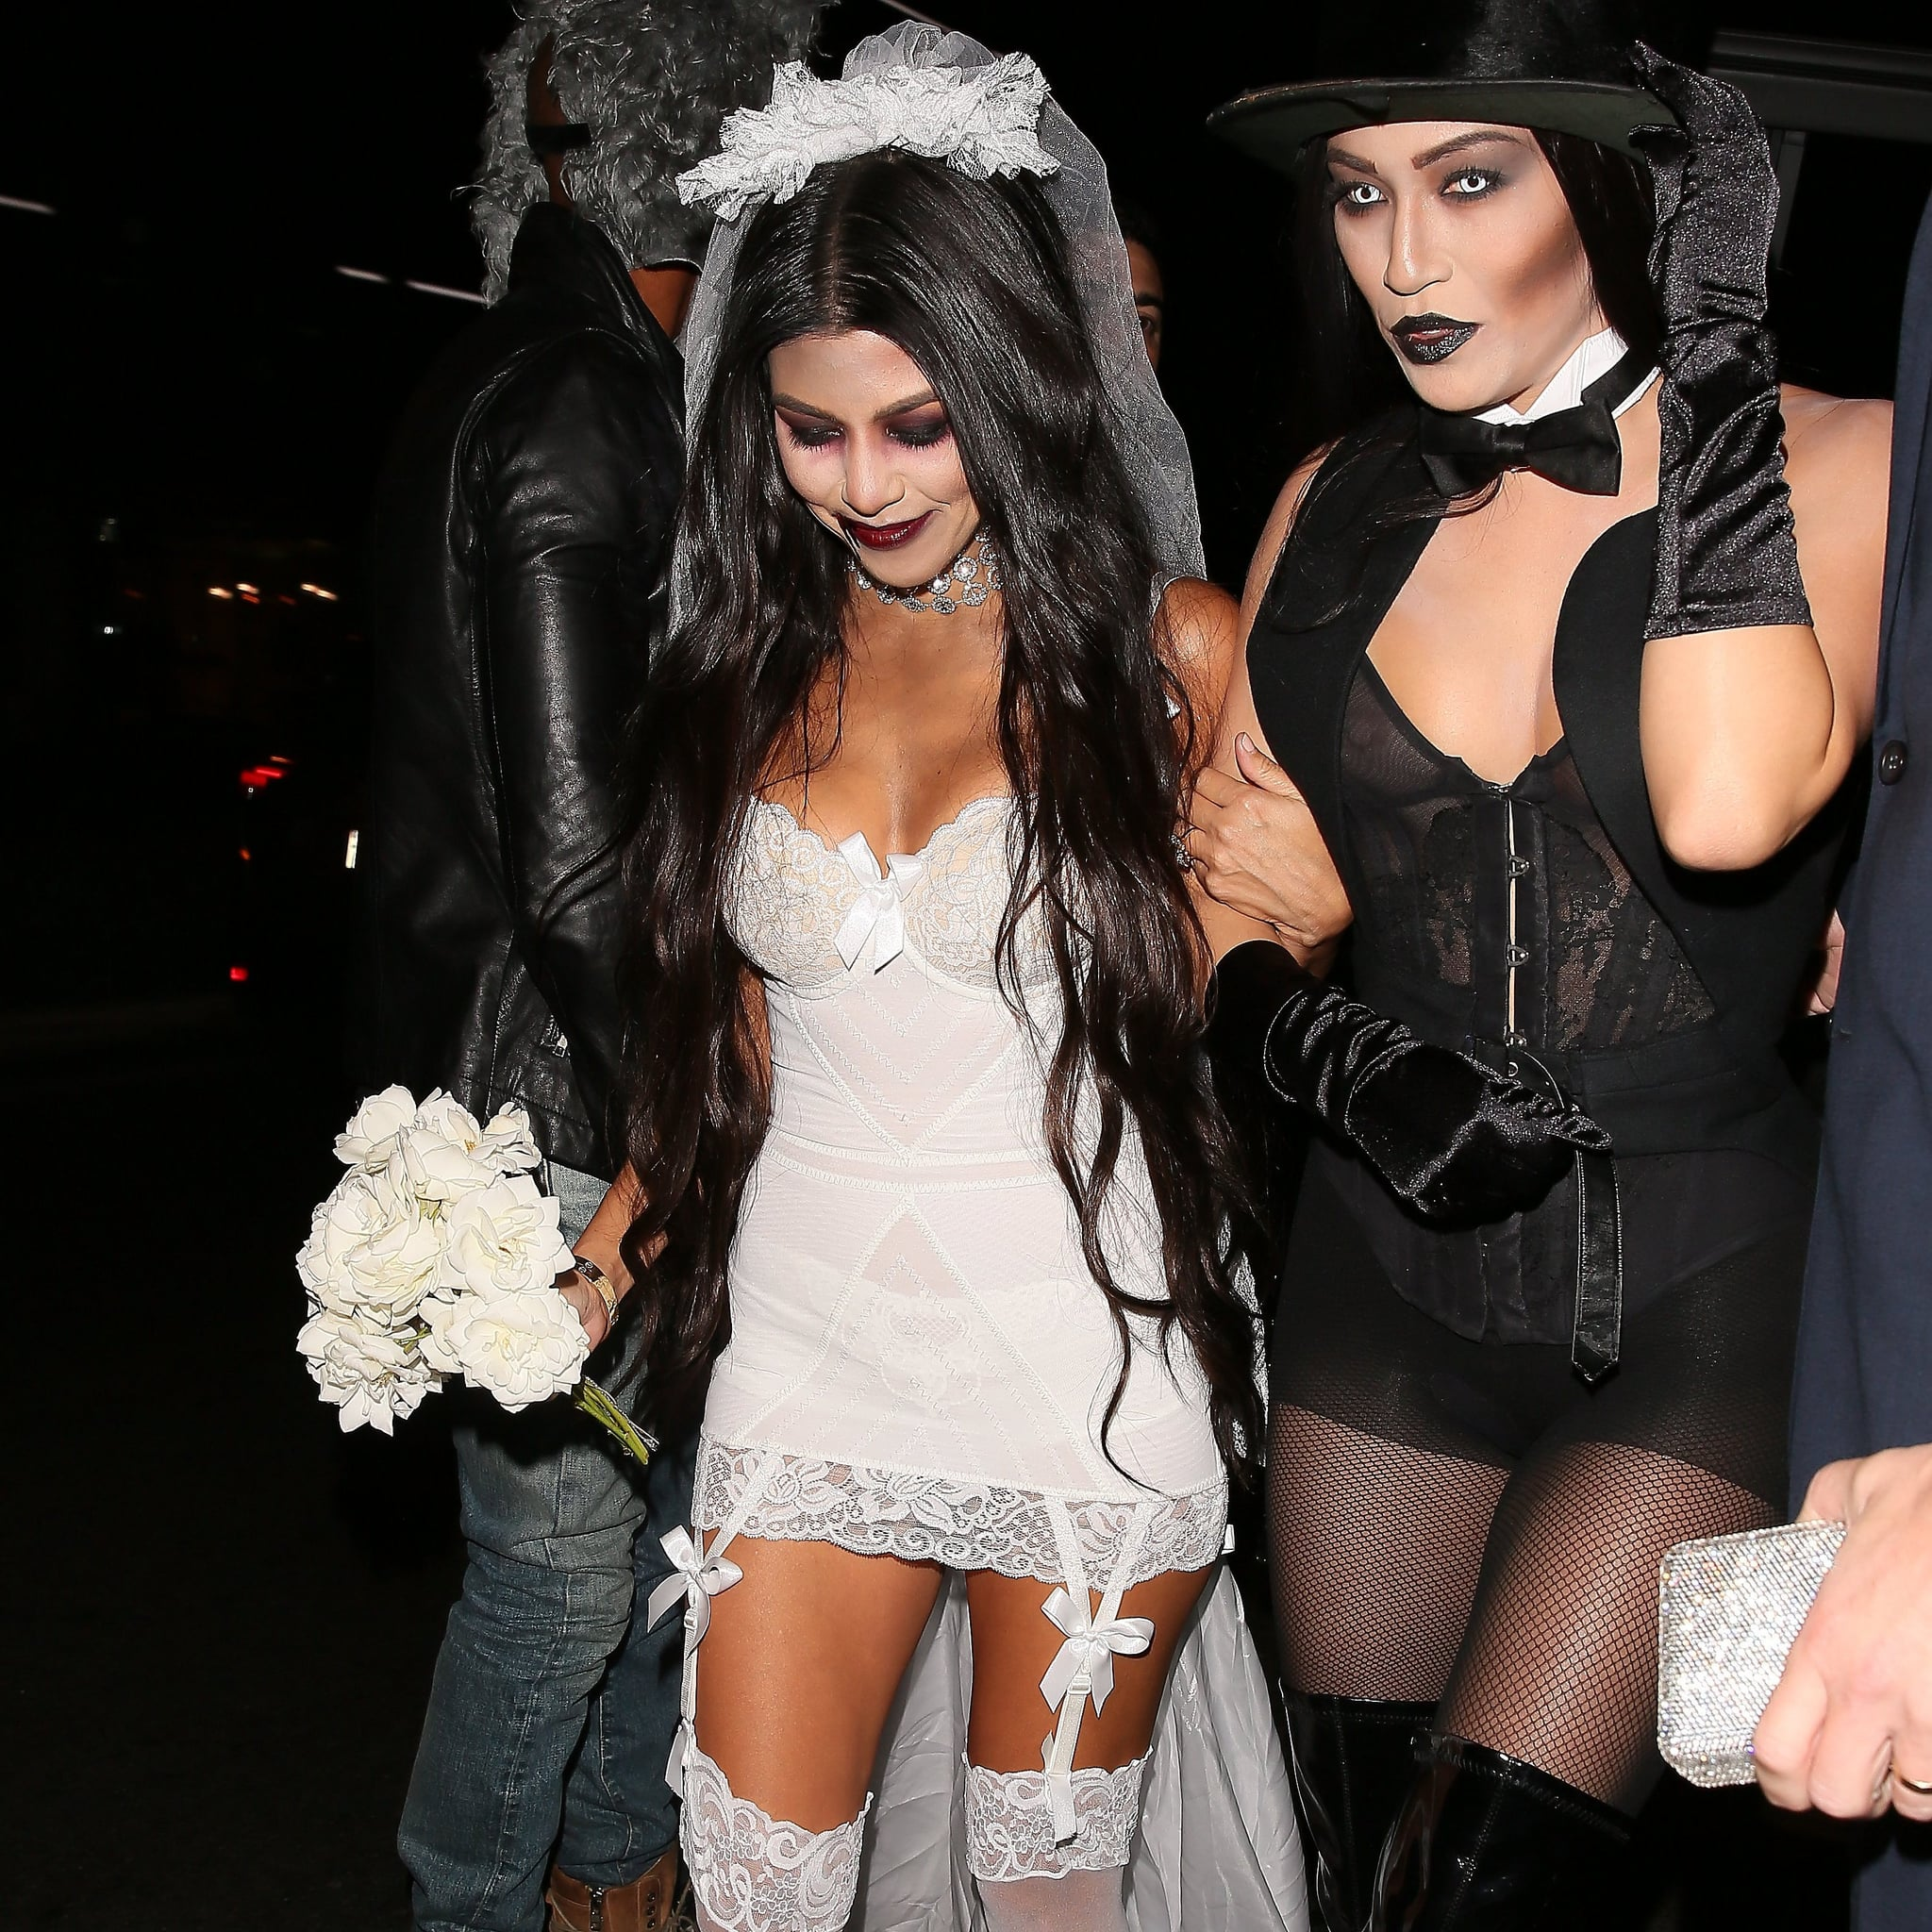 celebrity halloween costumes 2016 - Celeb Halloween Costume